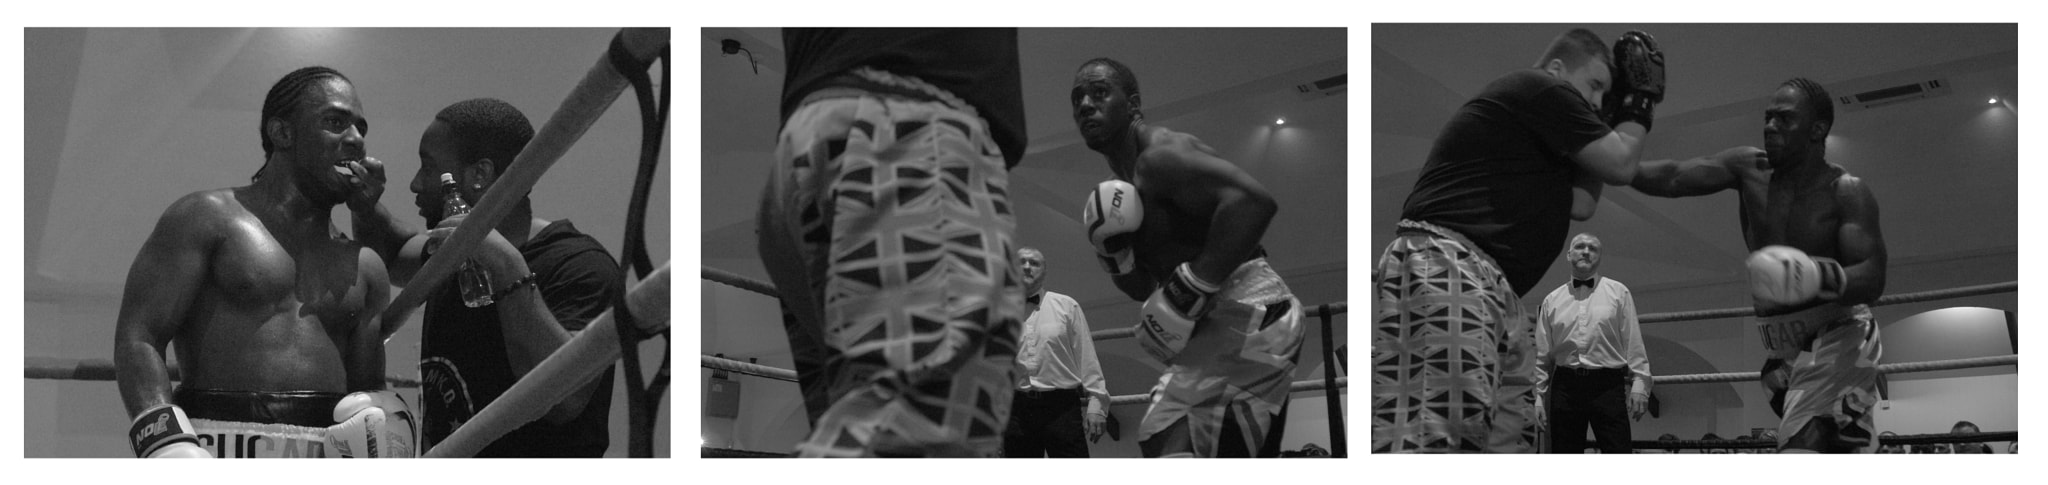 Photograph Boxing Story by Lee Ashman on 500px